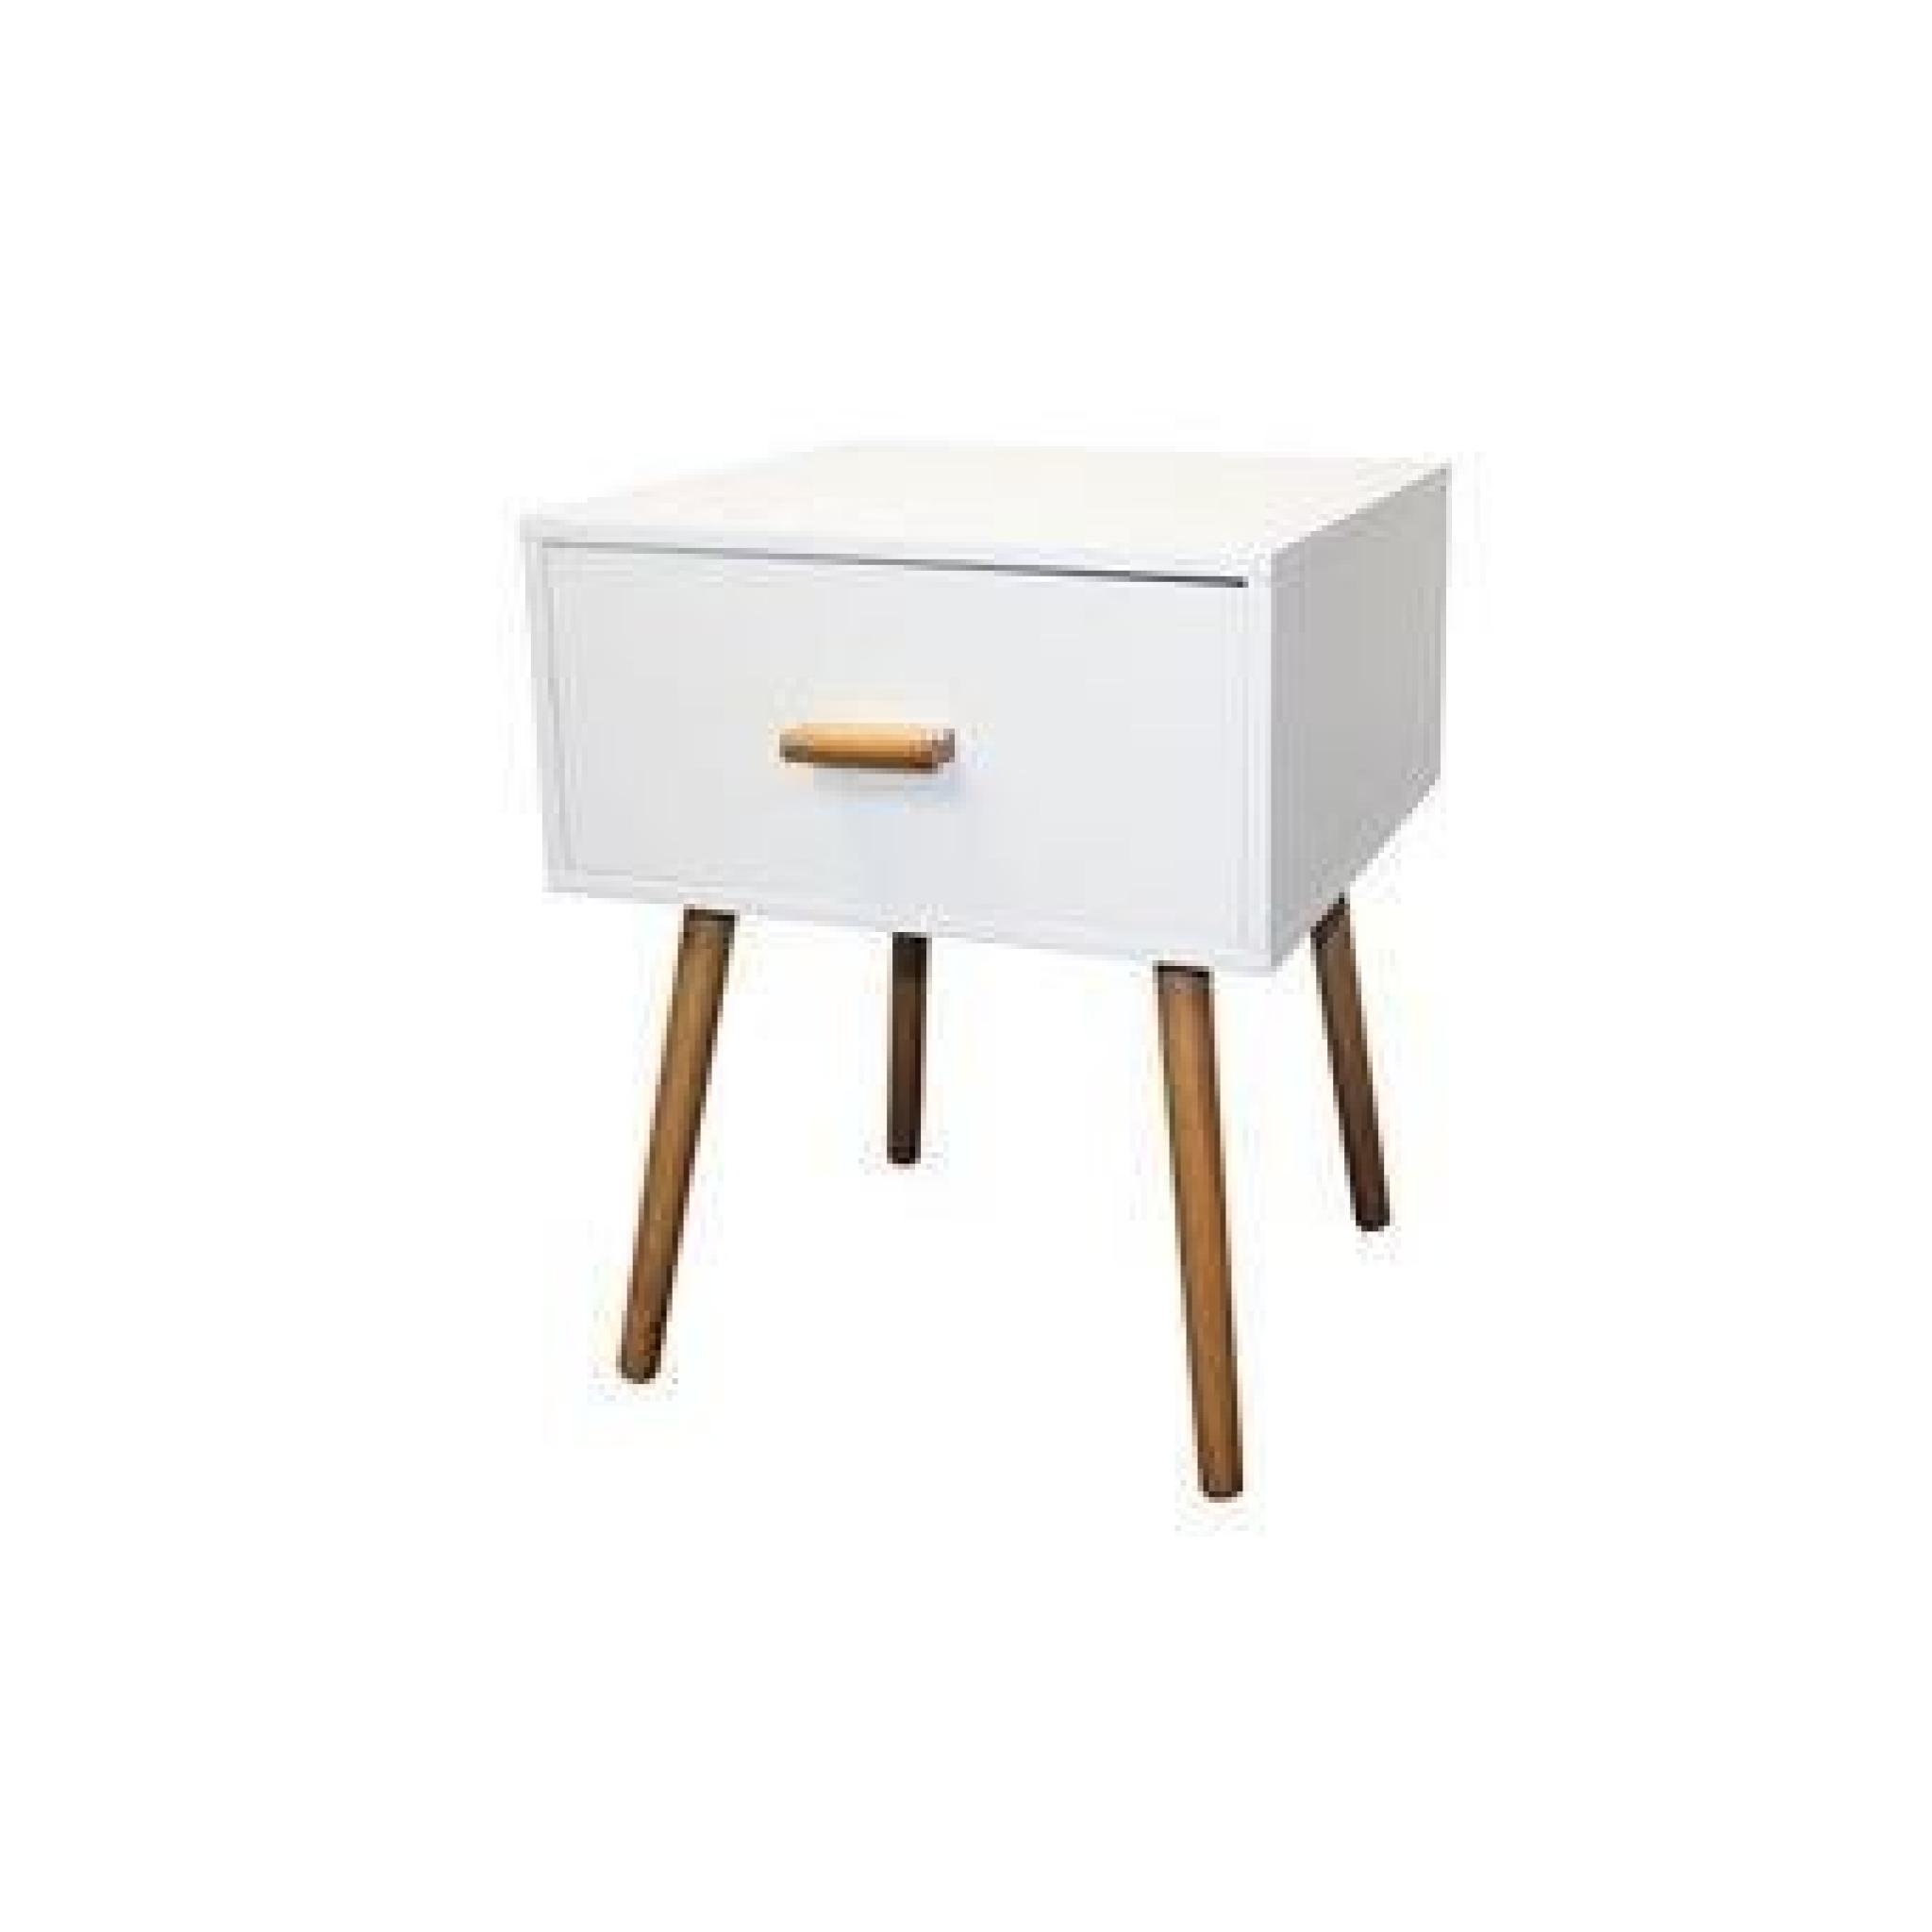 Table de chevet blanc design scandinave achat vente for Table pas cher